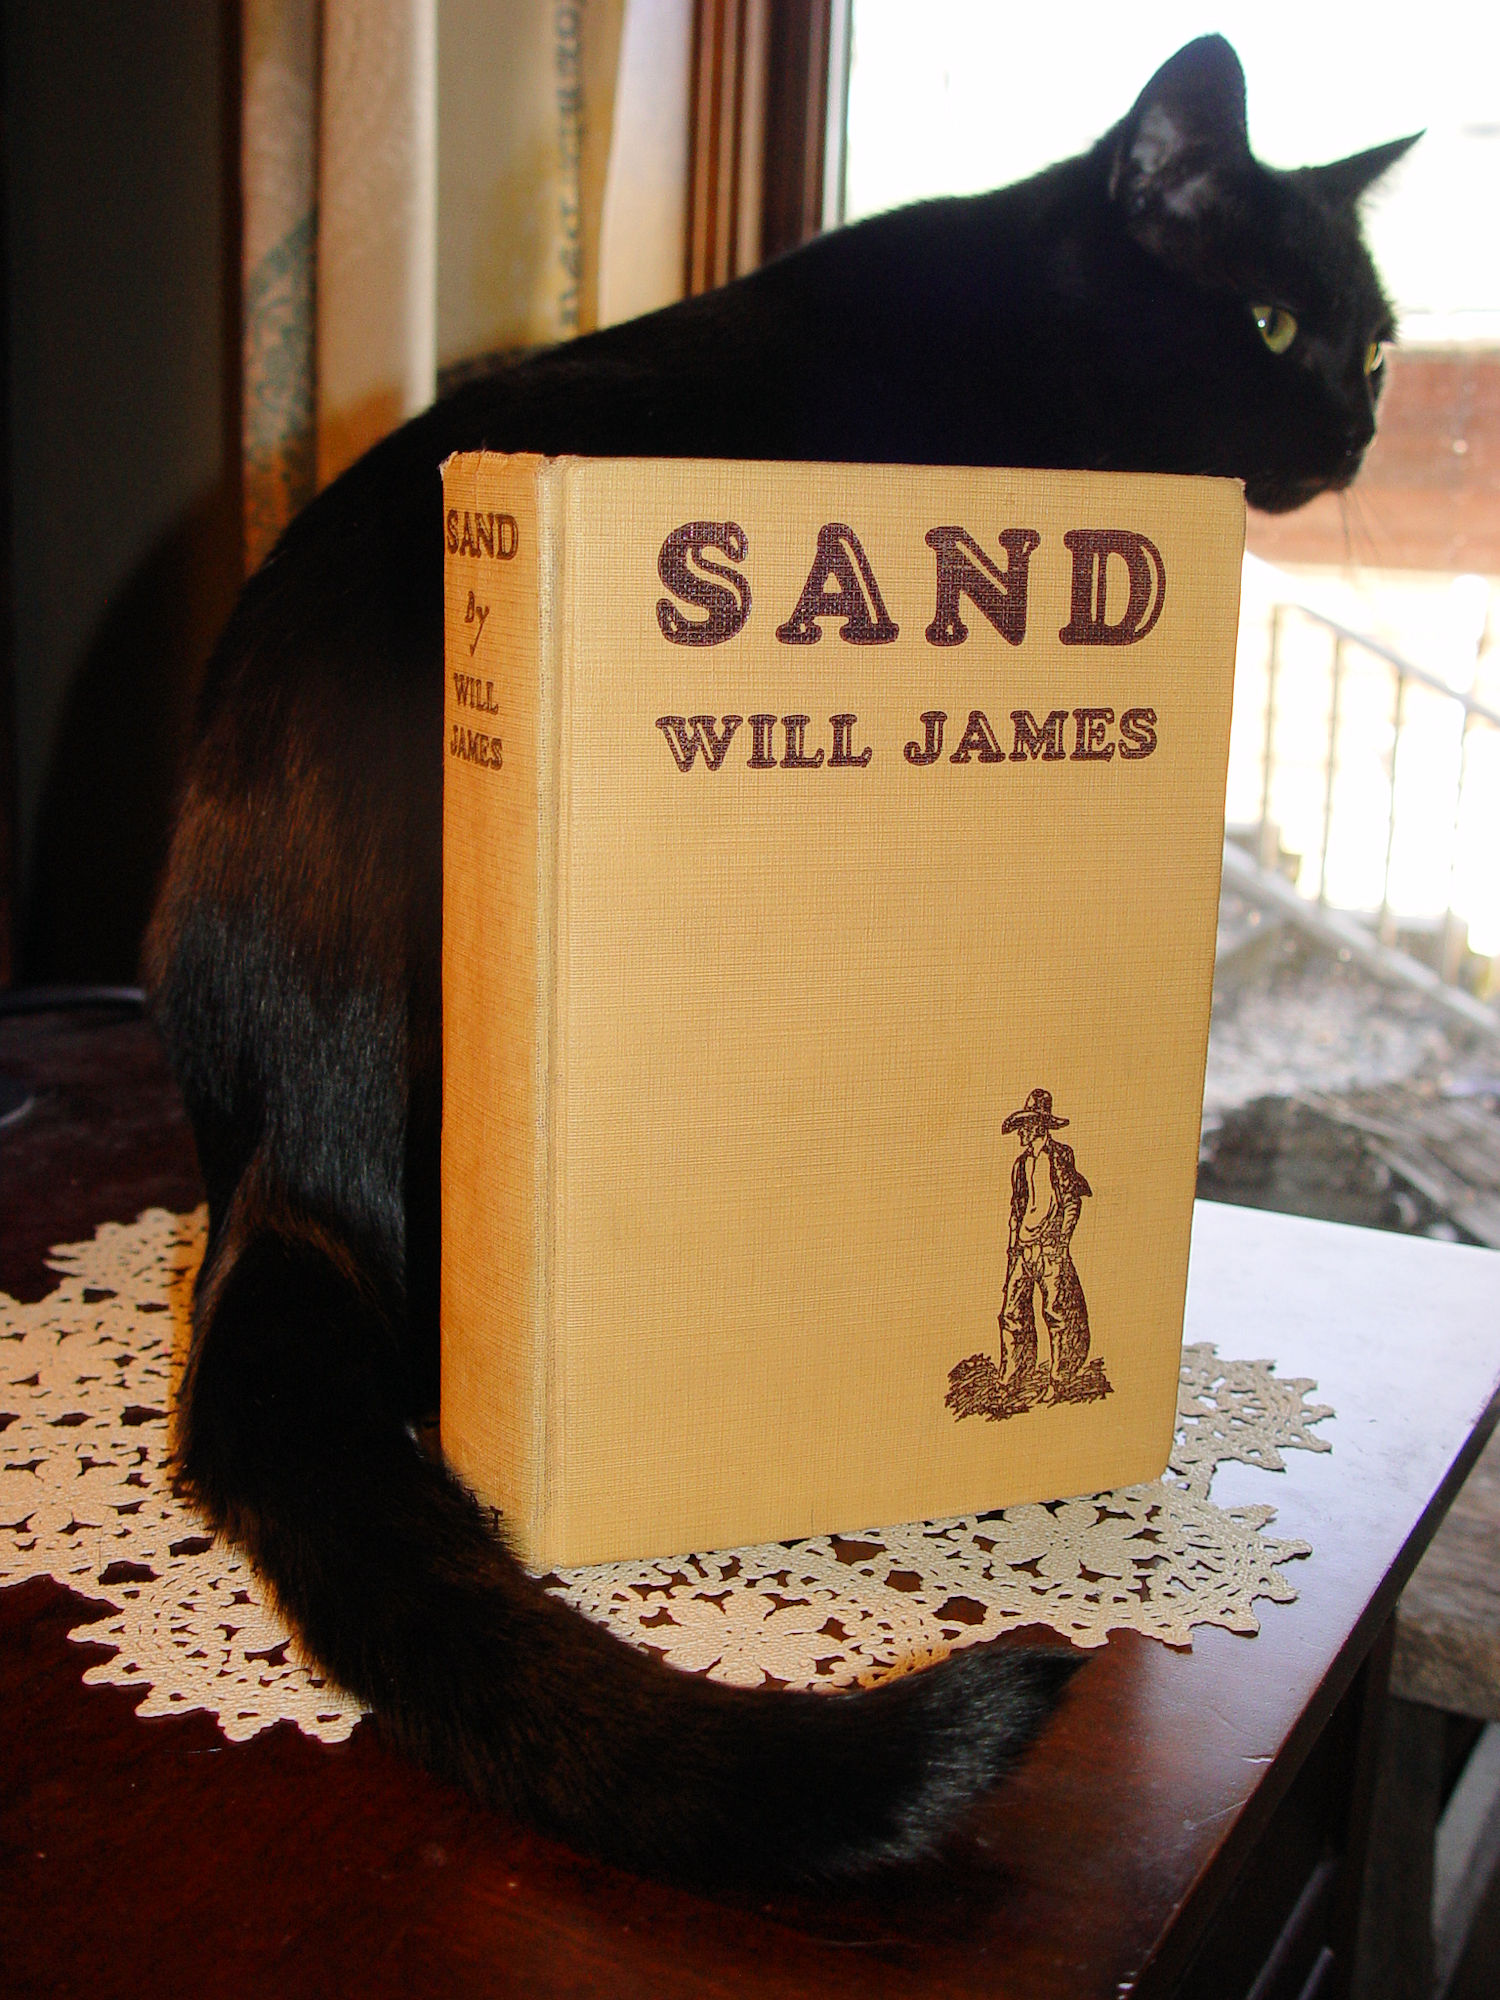 Sand by Will James, New                                         York: A. L. Burt Co. 1929 ~                                         First Edition